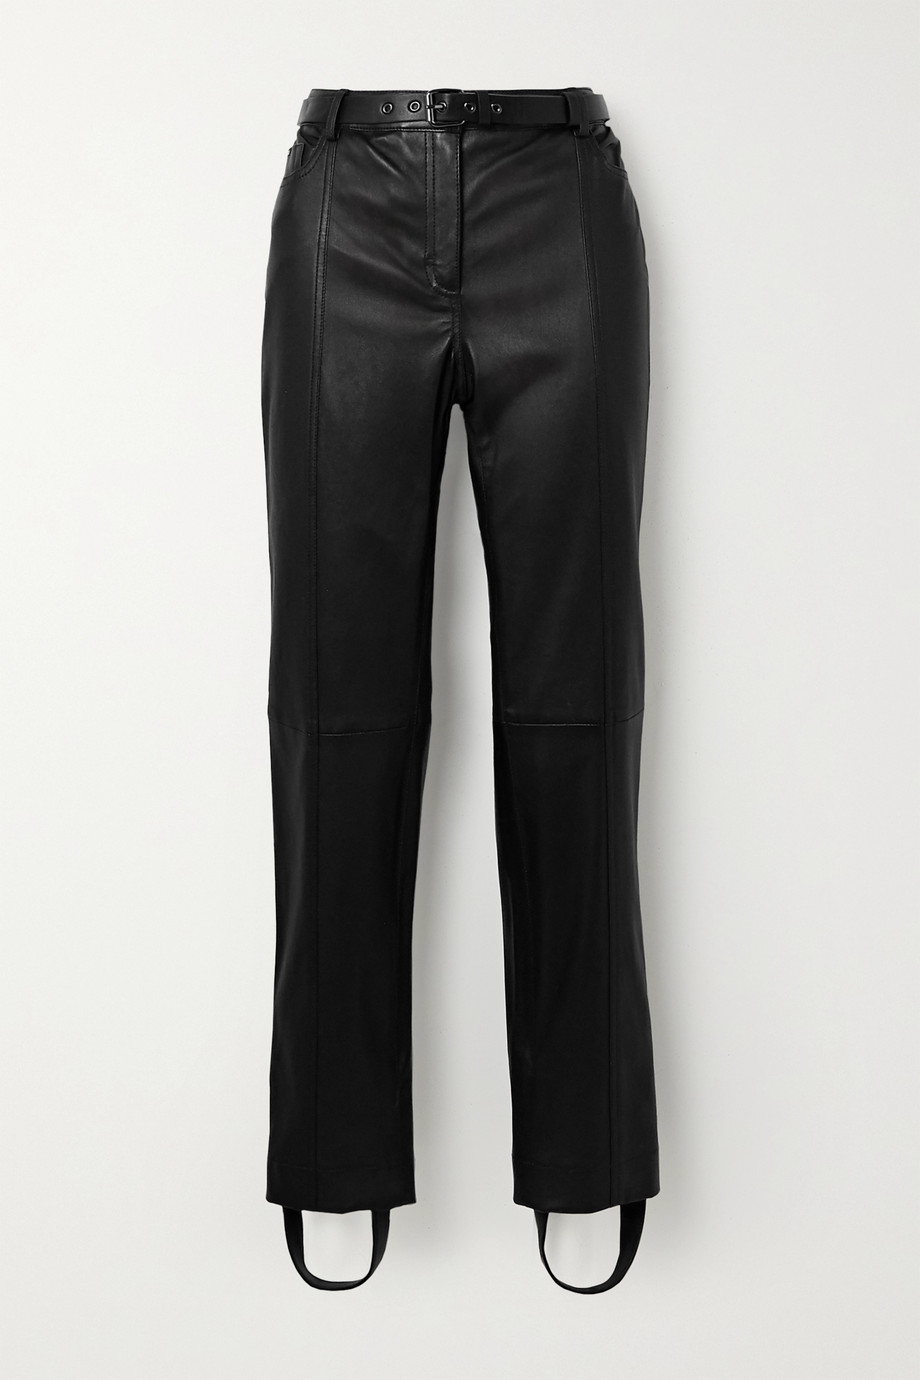 TOM FORD Belted leather straight-leg stirrup pants